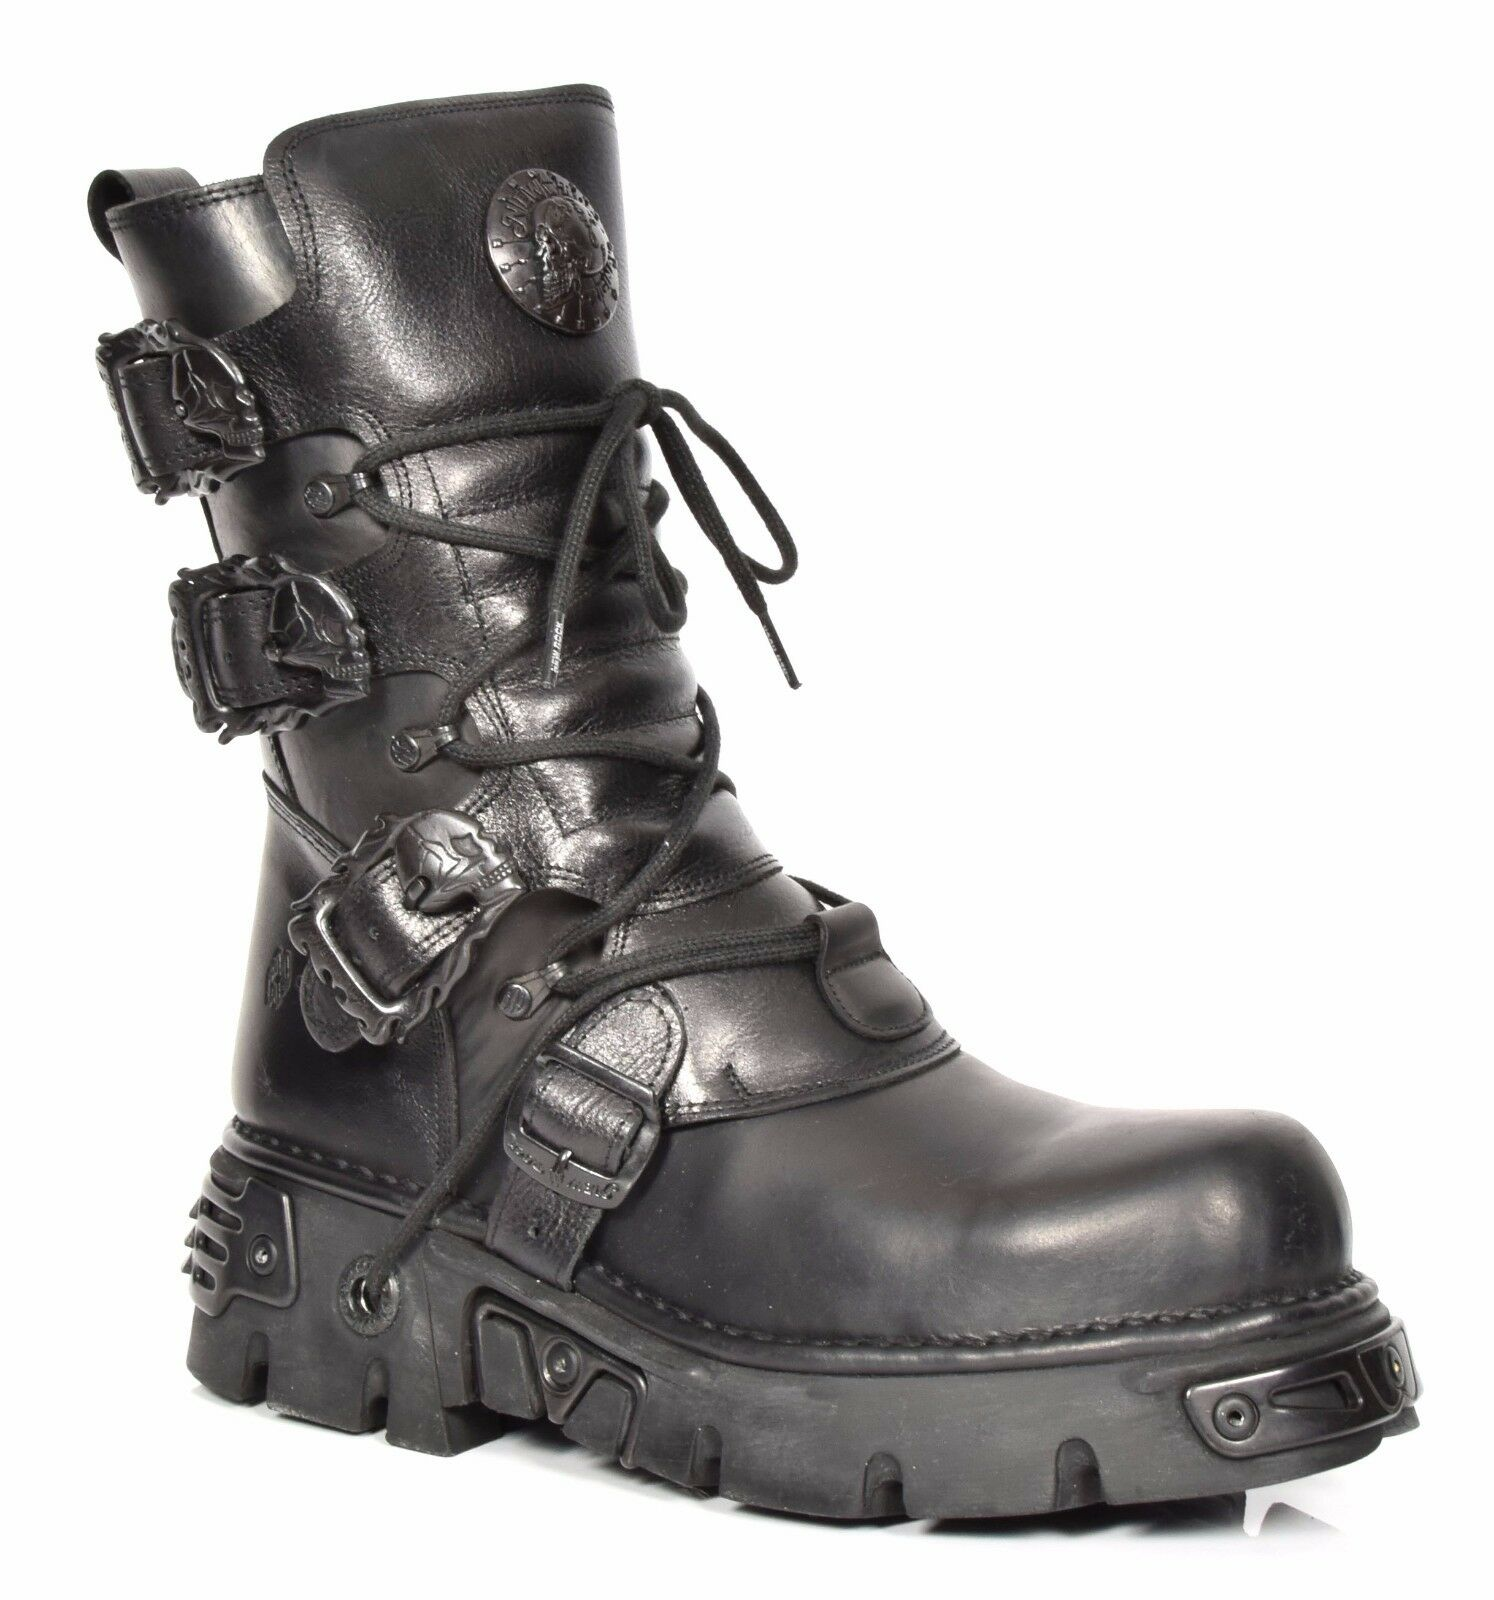 New Rock Leather Leather Leather Boots Lace up shoes Retro Style Skull Buckle Design Plain Black 0e8bf2